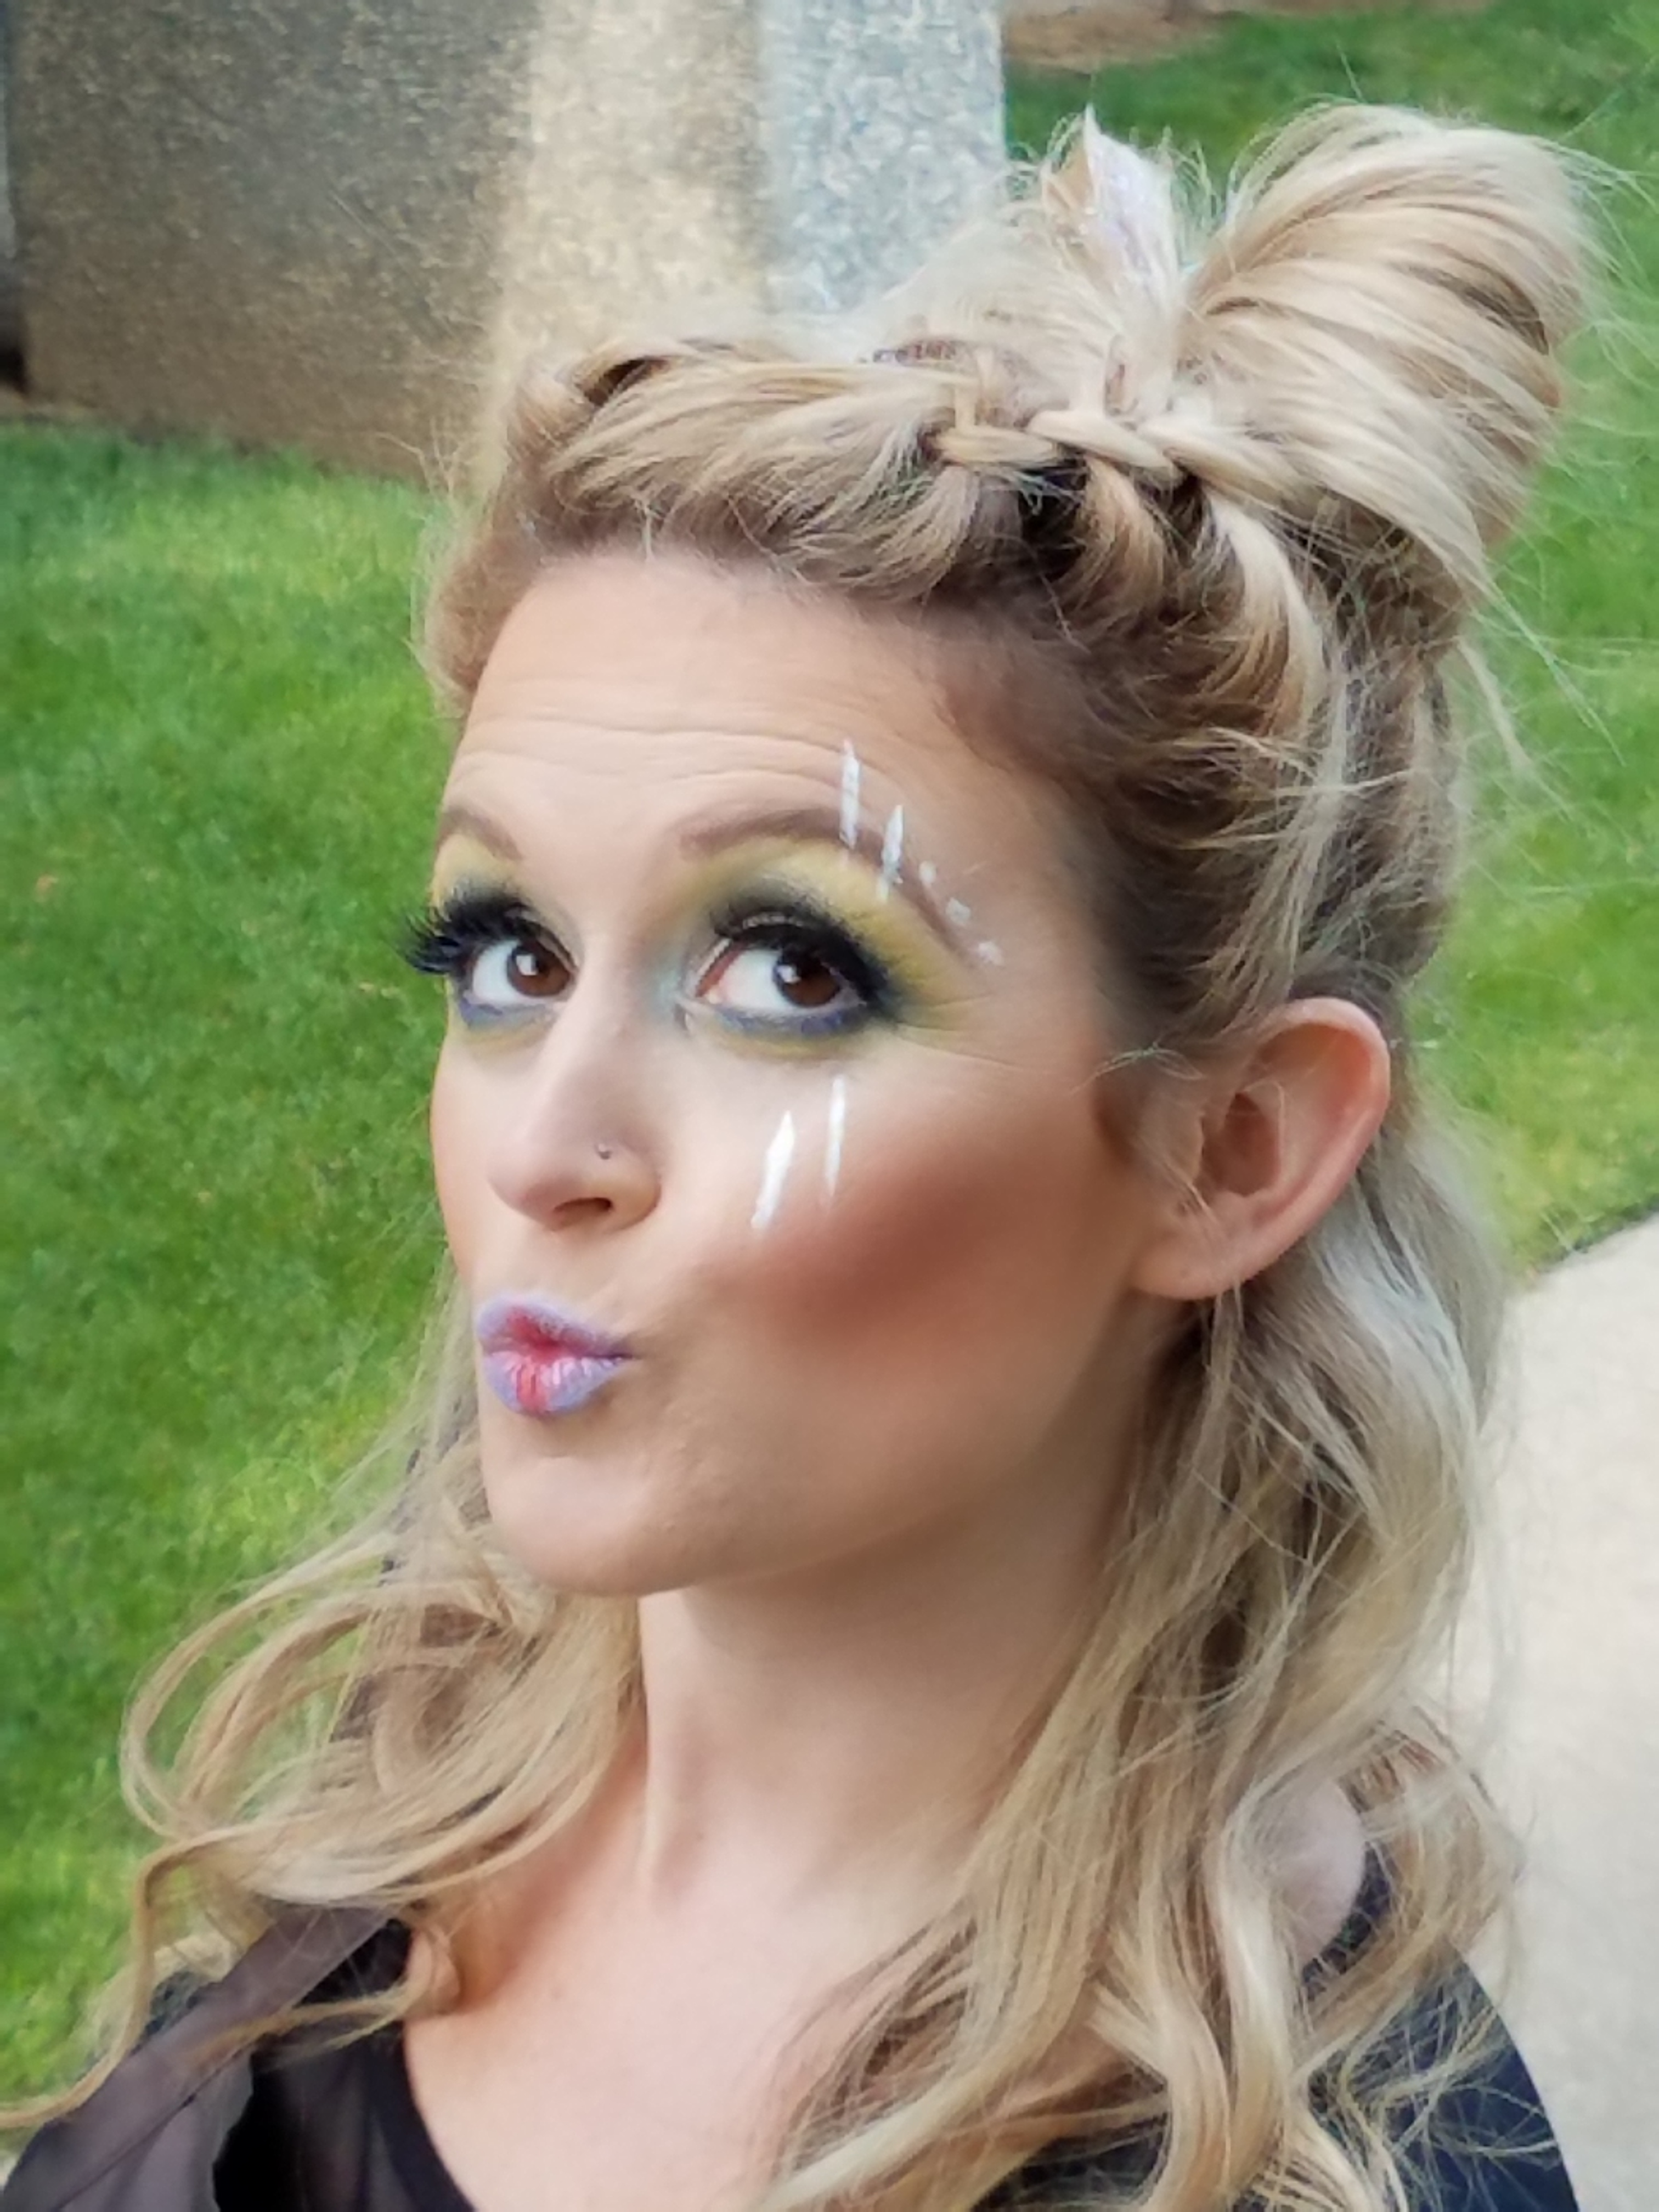 Cute festival up-do and fun makeup - complete with duck face!